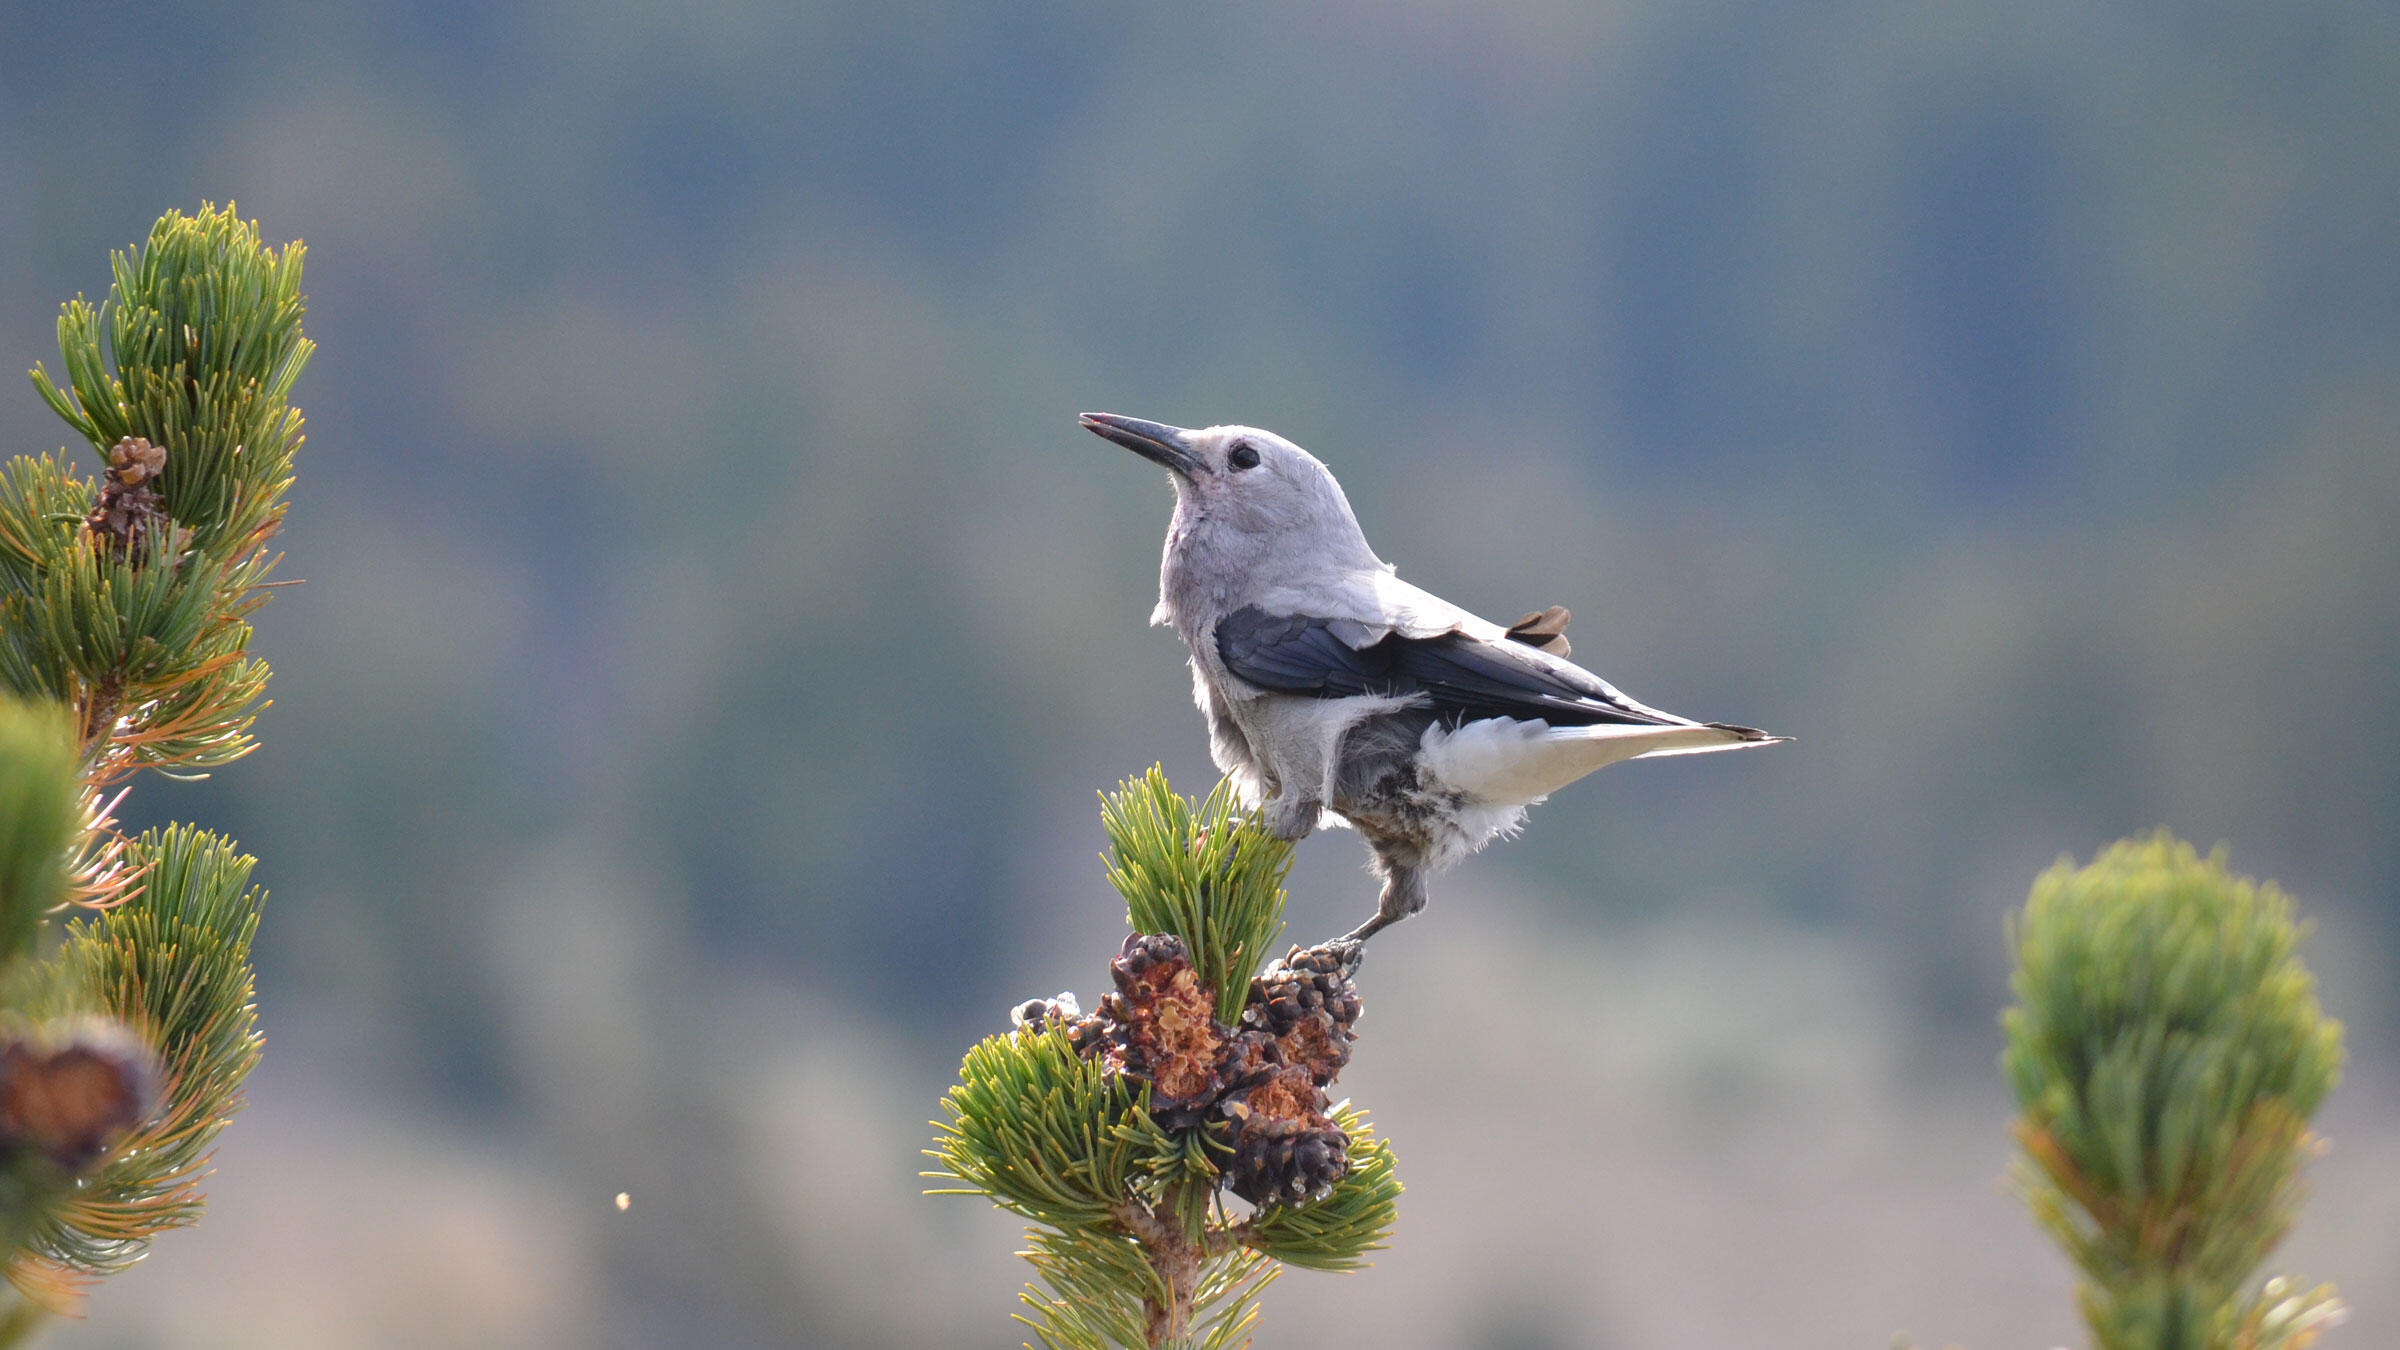 No bird dismantles pinecones like a Clark's Nutcracker, which leaves chipped craters behind. LassenNPS